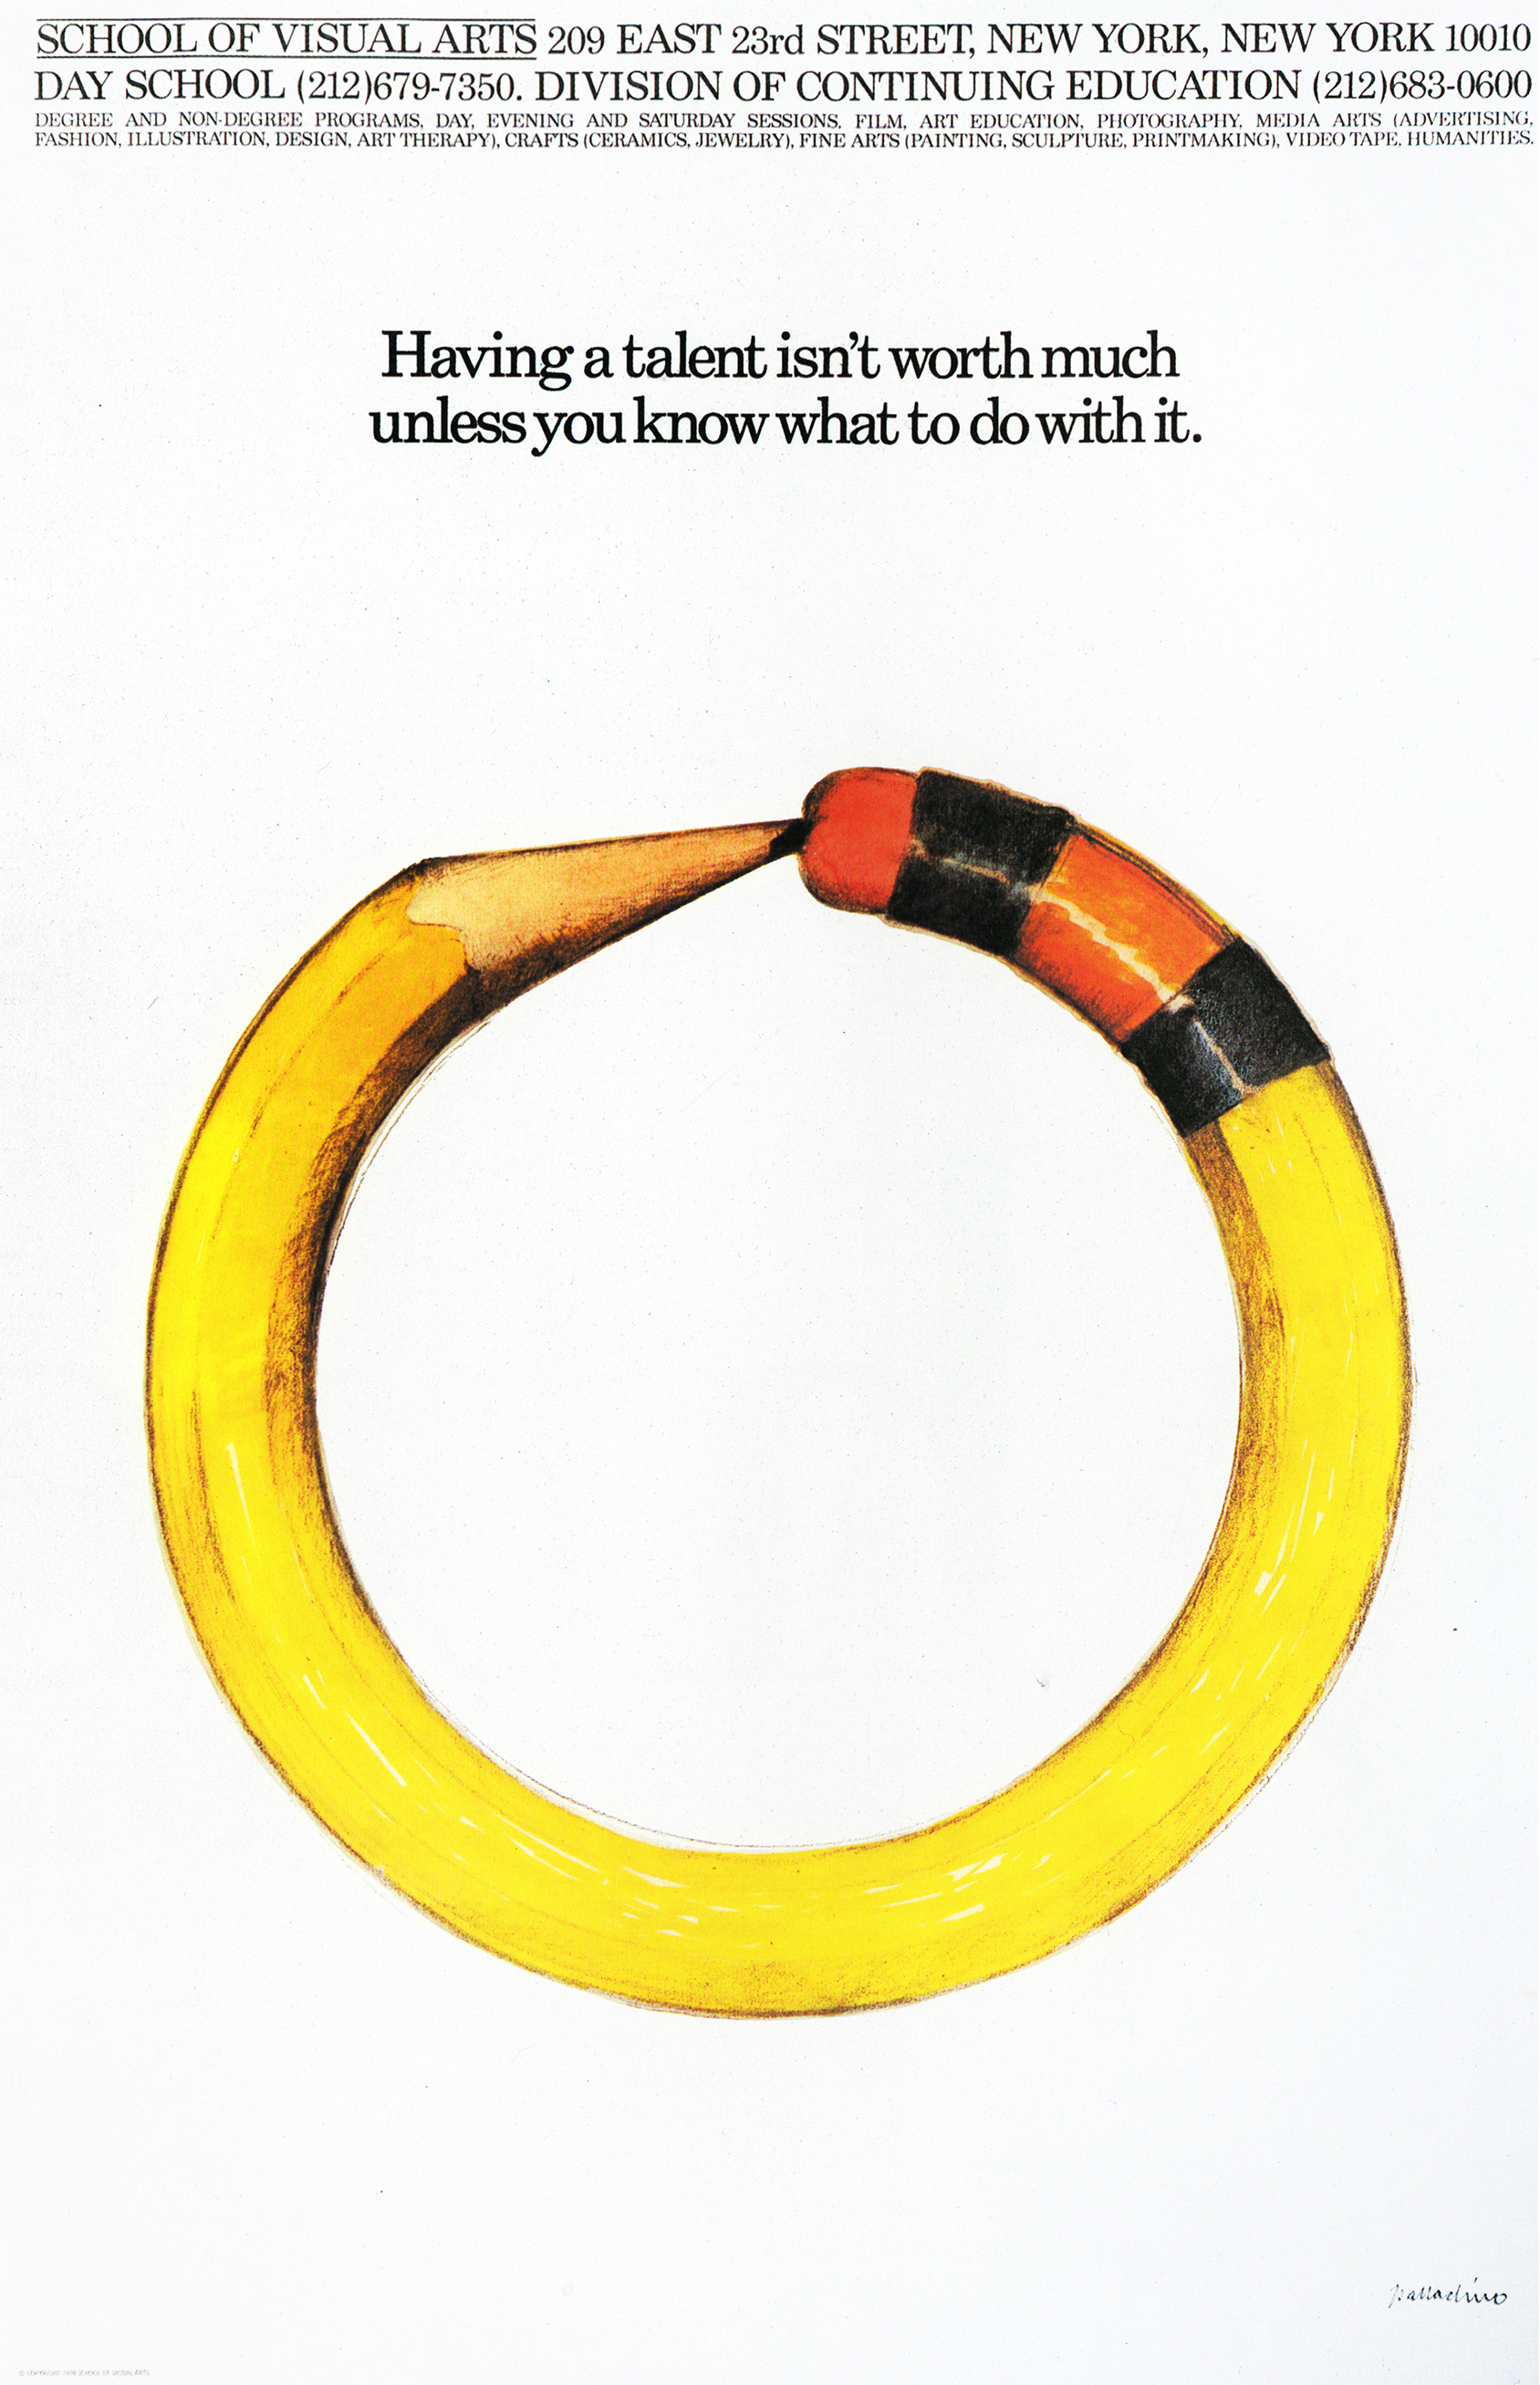 Color illustration of a pencil bent into a circle against a white background.